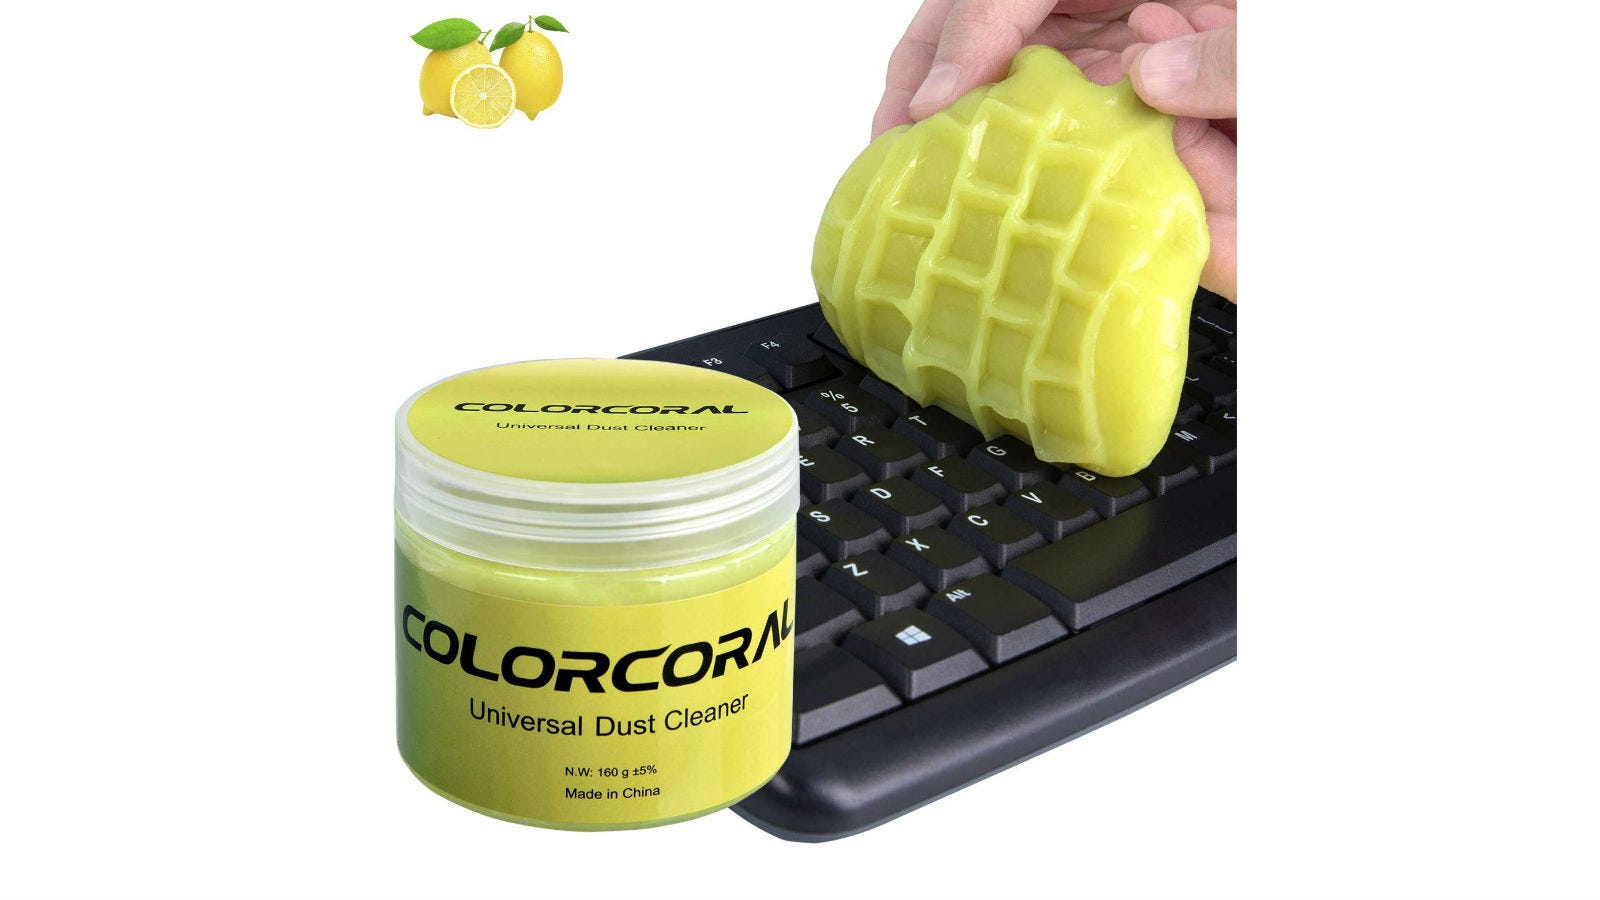 A jar of ColorCoral Universal Keyboard Dust Cleaner next to a person's hand using a sponge to clean a keyboard.